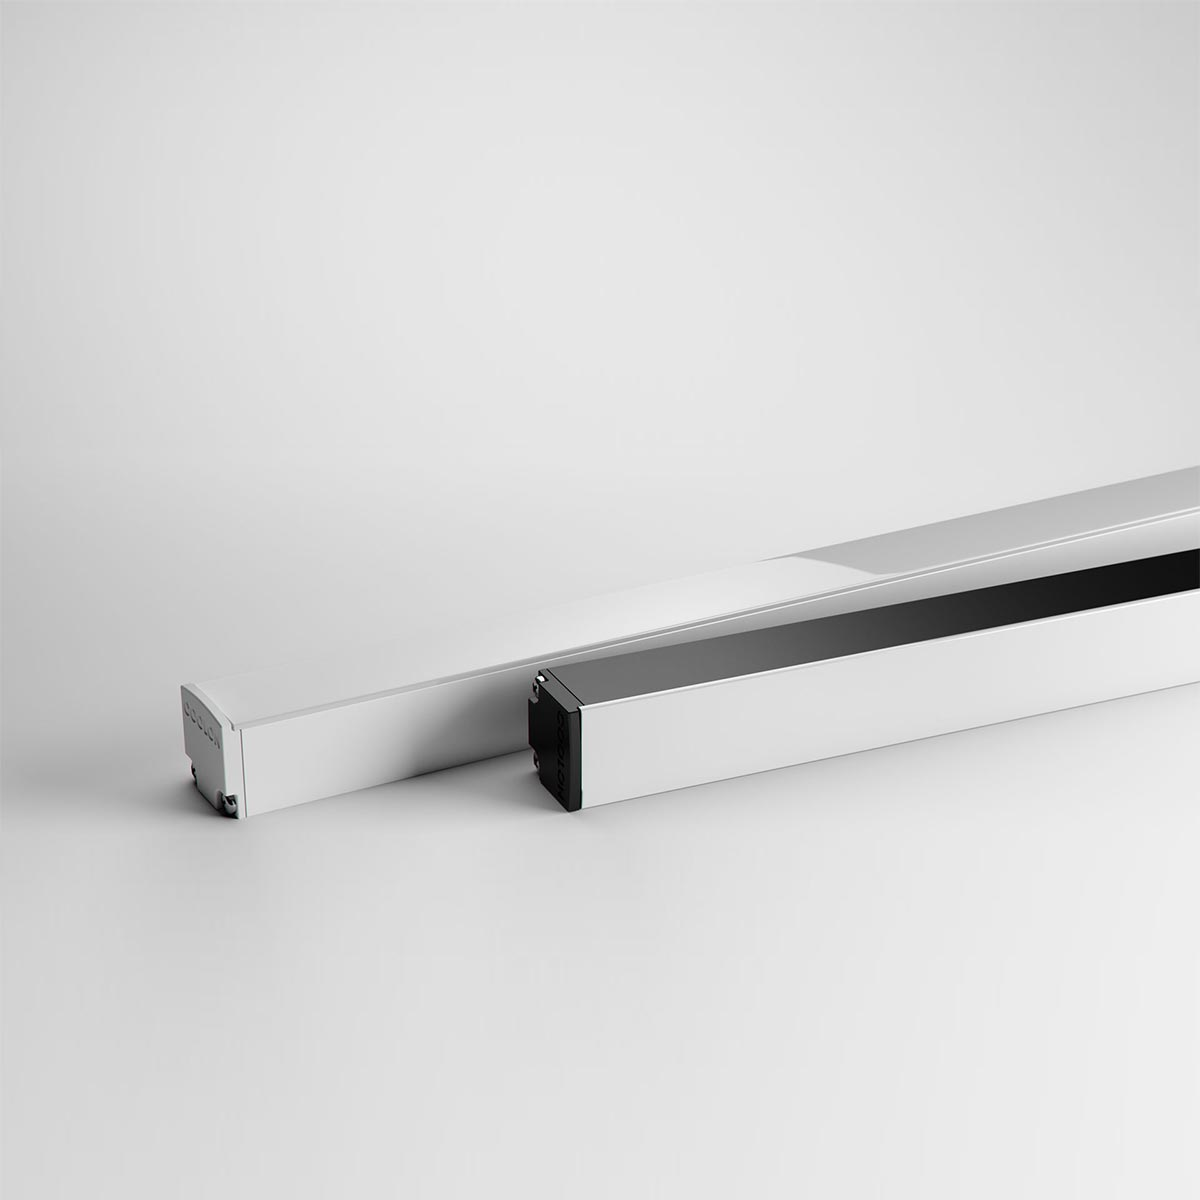 Aris UG Compact Linear Marker Luminaire with Homogeneous Light Output (11W or 28W pr 40W)